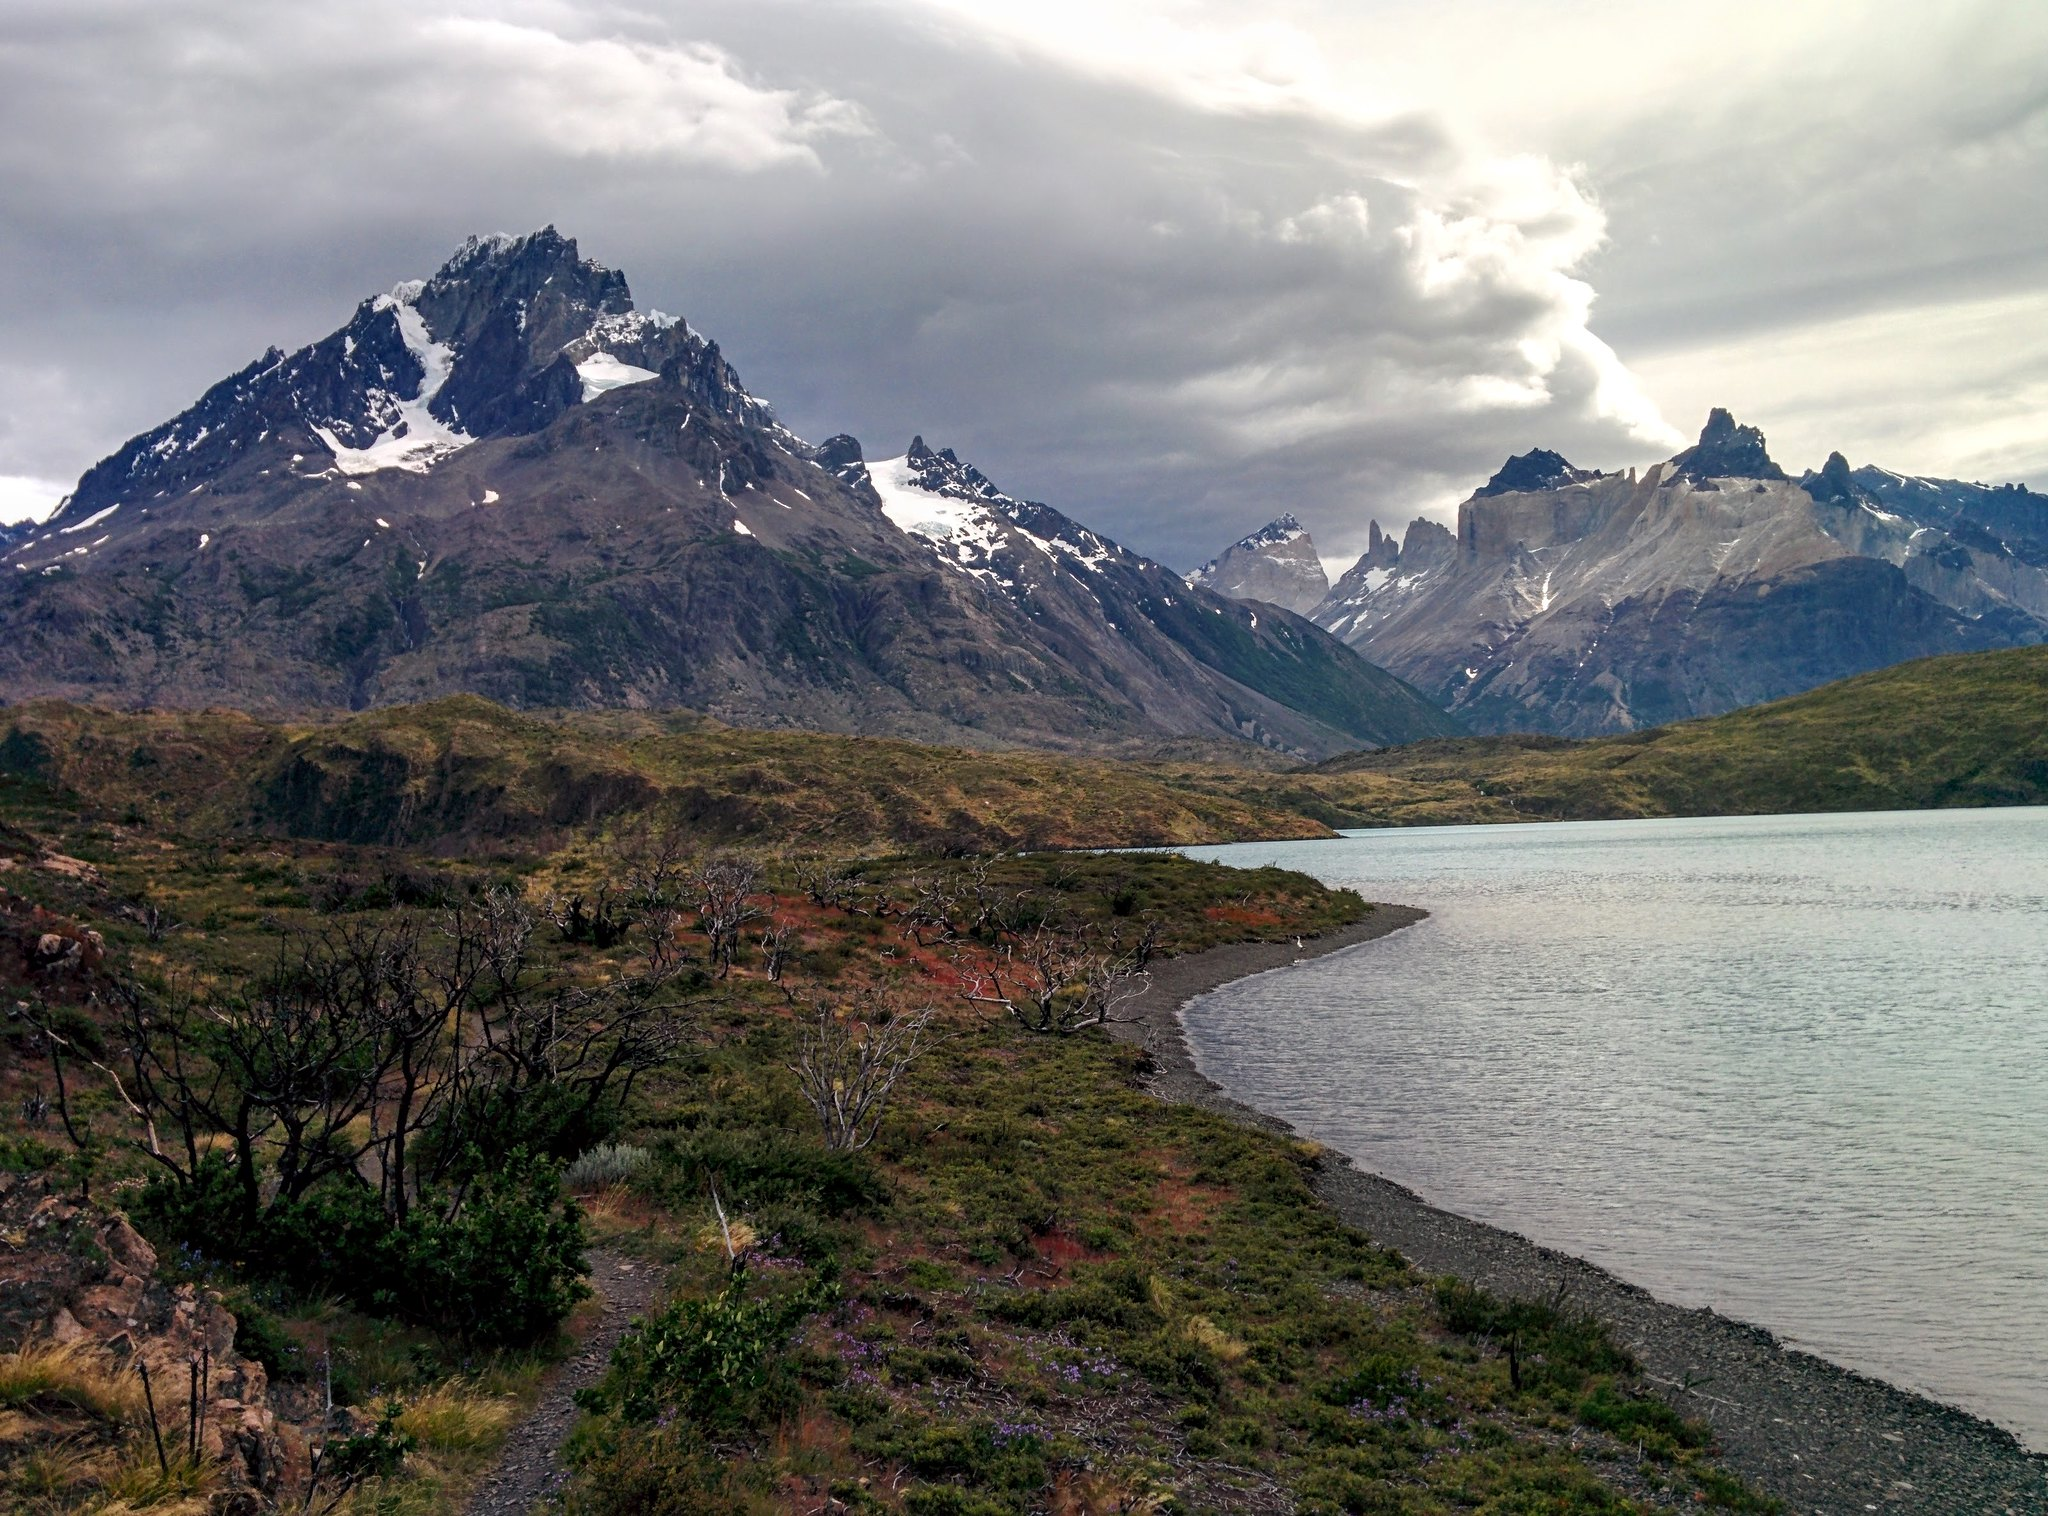 Cordillera Paine from the Western shore of Lago Pehoé